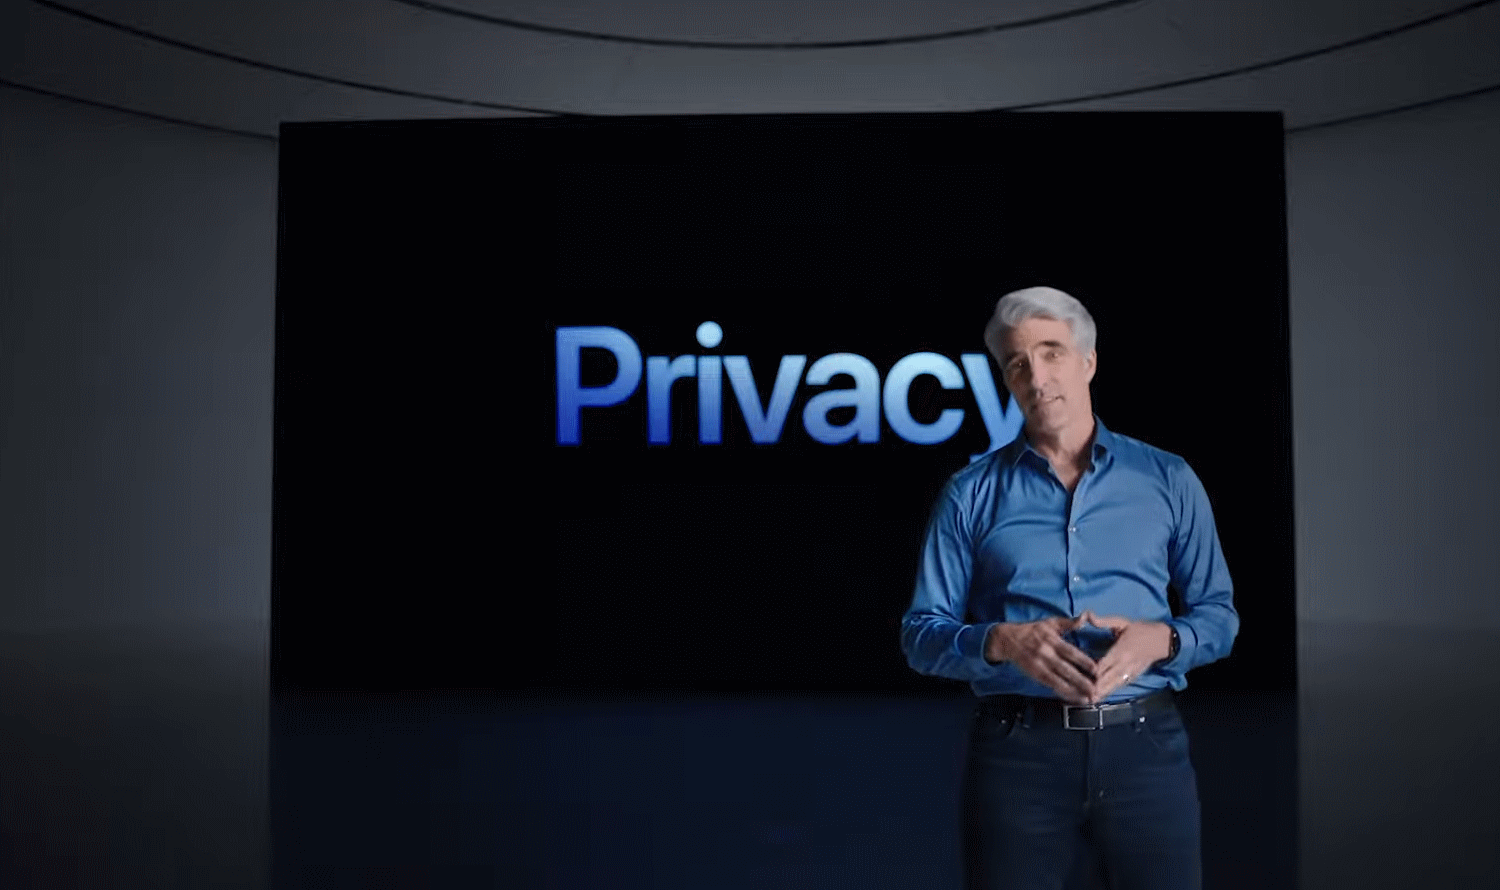 New Apple privacy features announced at WWDC 2021